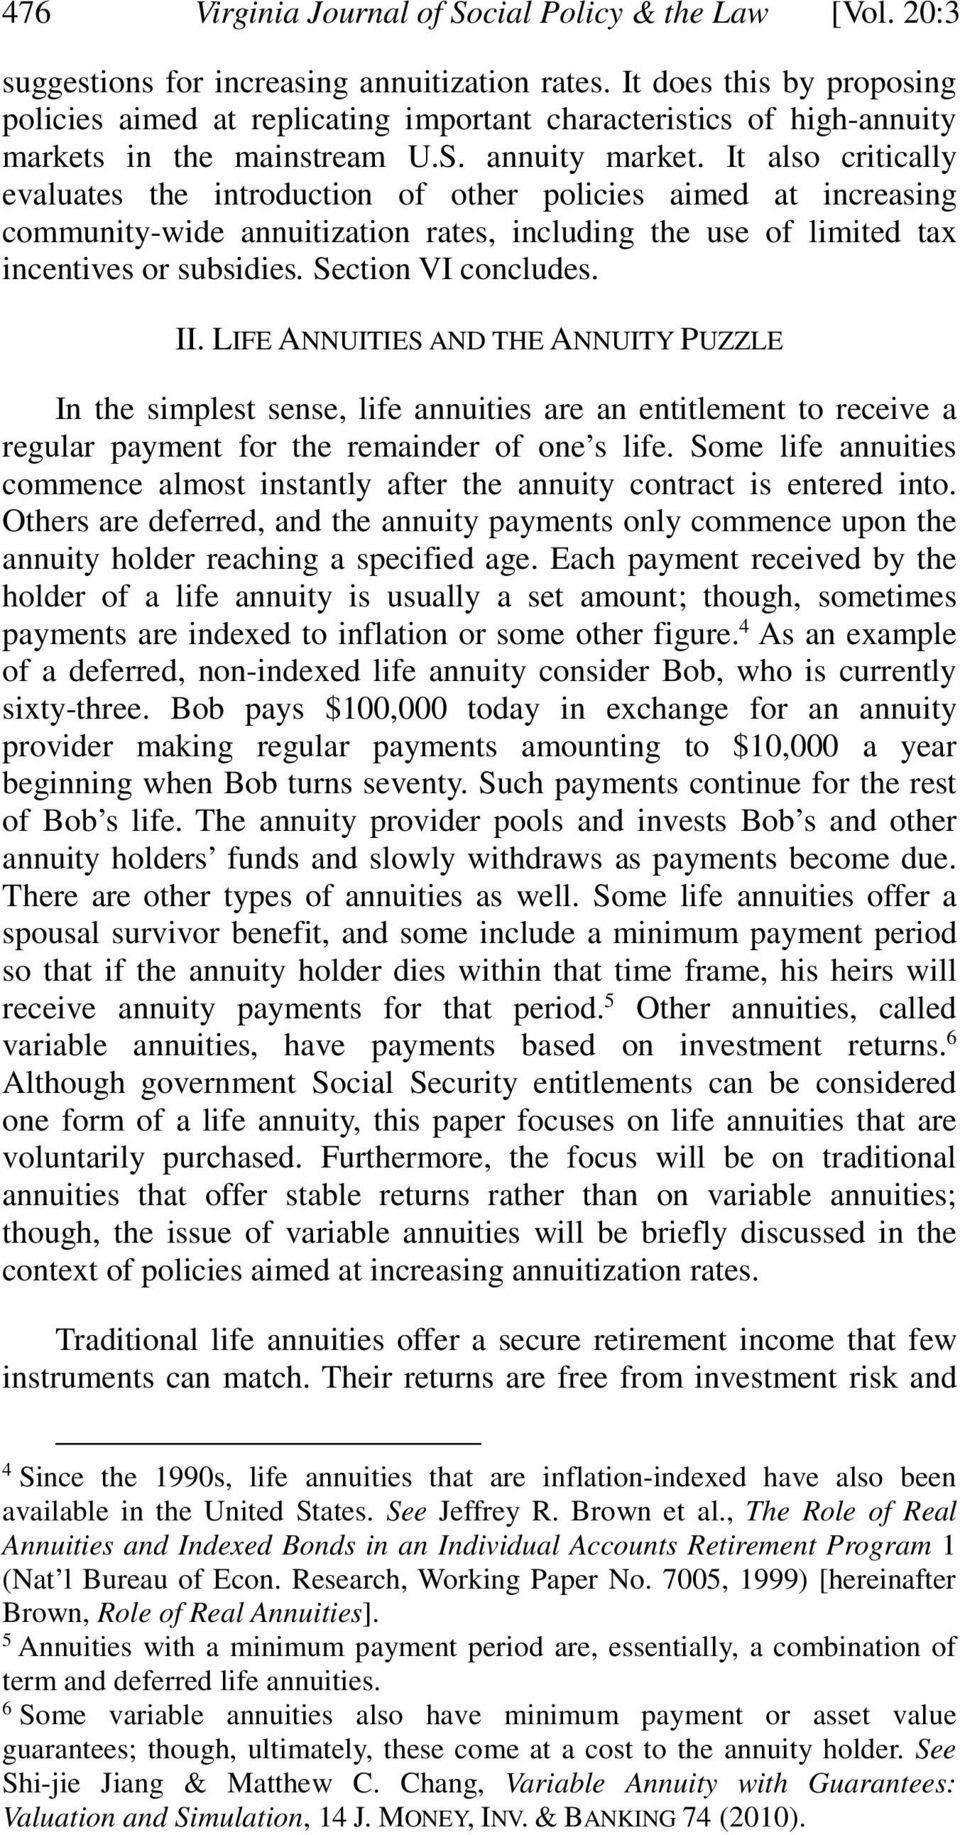 It also critically evaluates the introduction of other policies aimed at increasing community-wide annuitization rates, including the use of limited tax incentives or subsidies. Section VI concludes.